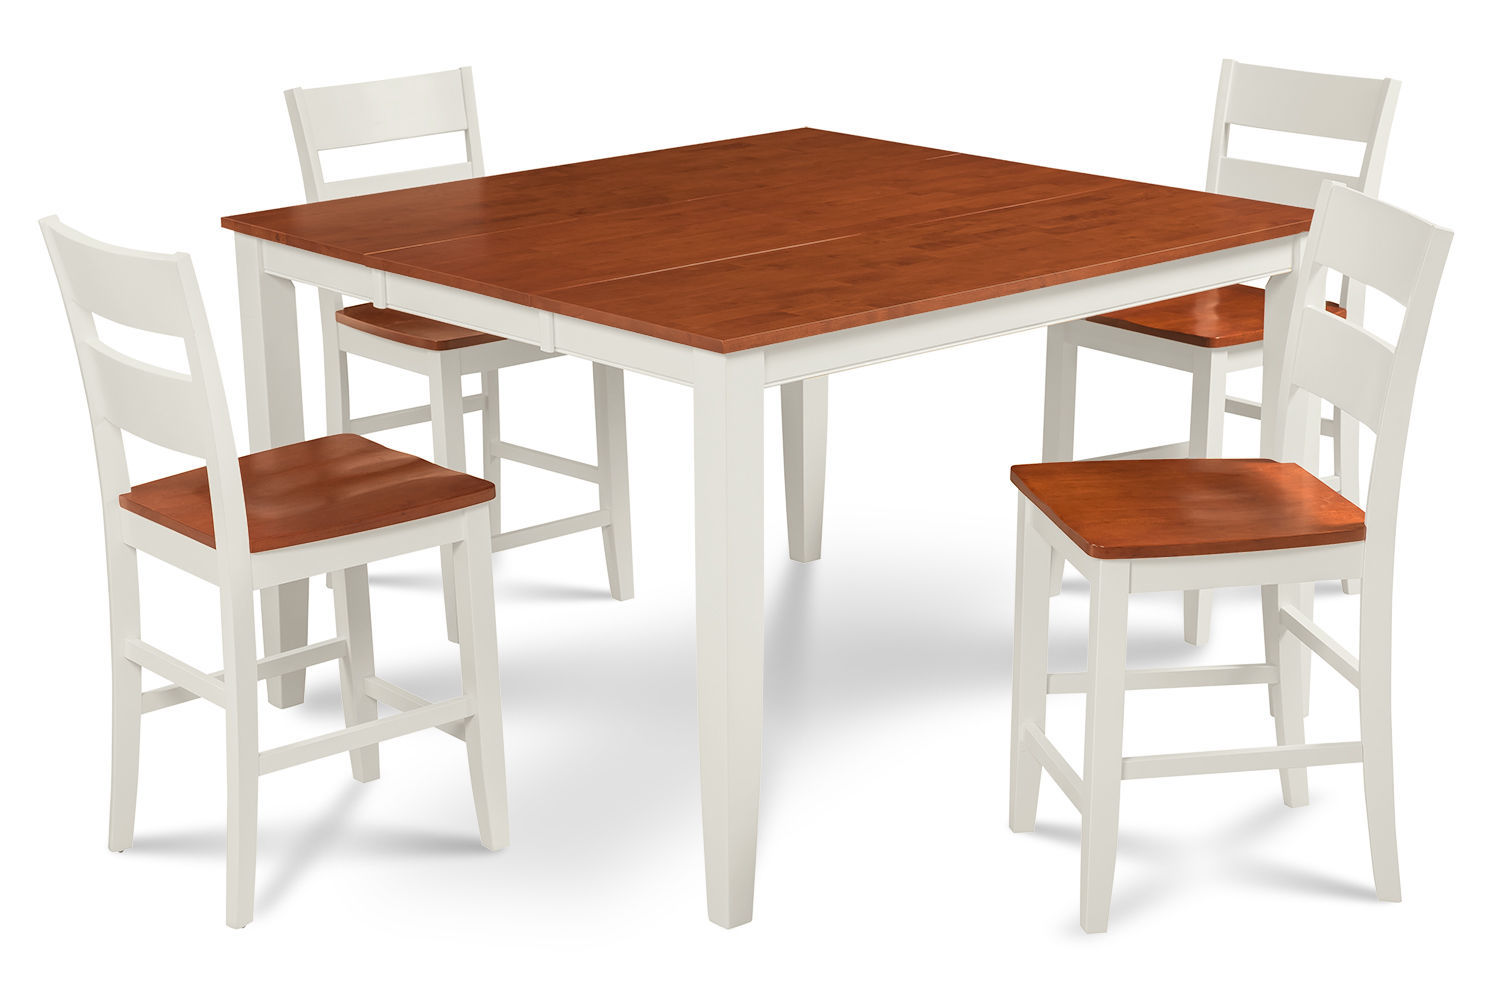 "54"" SQUARE COUNTER HEIGHT TABLE DINING ROOM SET W. WOODEN SEATS IN WHITE CHERRY"